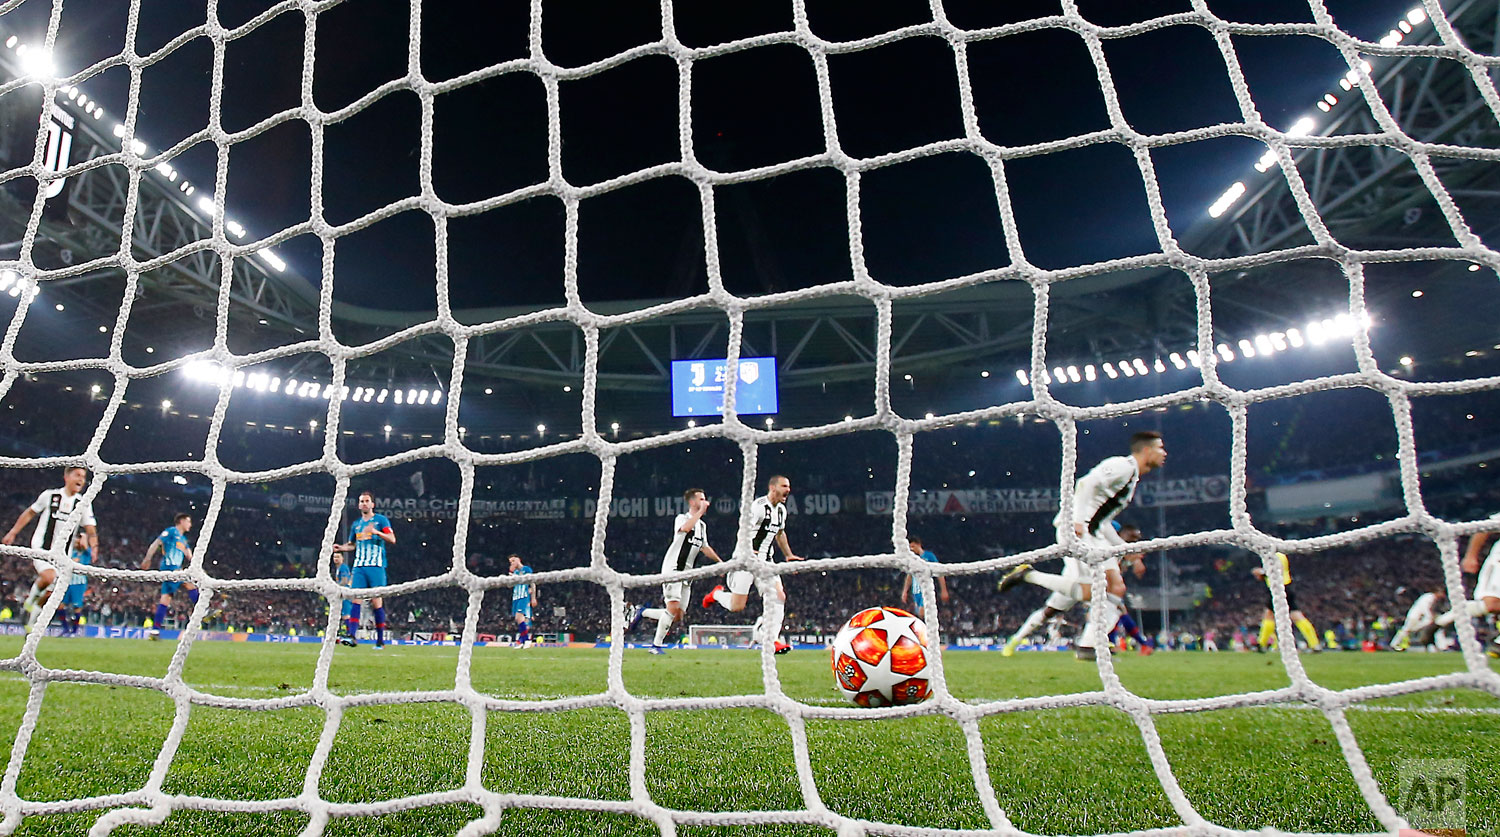 "In this photo taken on Tuesday, March 12, 2019 through a net made by ""La Rete"" factory,  Juventus' Cristiano Ronaldo celebrates after scoring his side's third goal during the Champions League round of 16, 2nd leg, soccer match between Juventus and Atletico Madrid at the Allianz stadium in Turin, Italy. Step off the ferry onto Monte Isola and it feels like going back in time. The factory of La Rete S.r.l. _ an old-fashioned producer of nets for soccer goals _ is indeed a throwback. Workers still use their hands to weave the nets that have been used at World Cups stretching back to the 1990 tournament in Italy, throughout Serie A and in recent Champions League finals, too. (AP Photo/Antonio Calanni)"